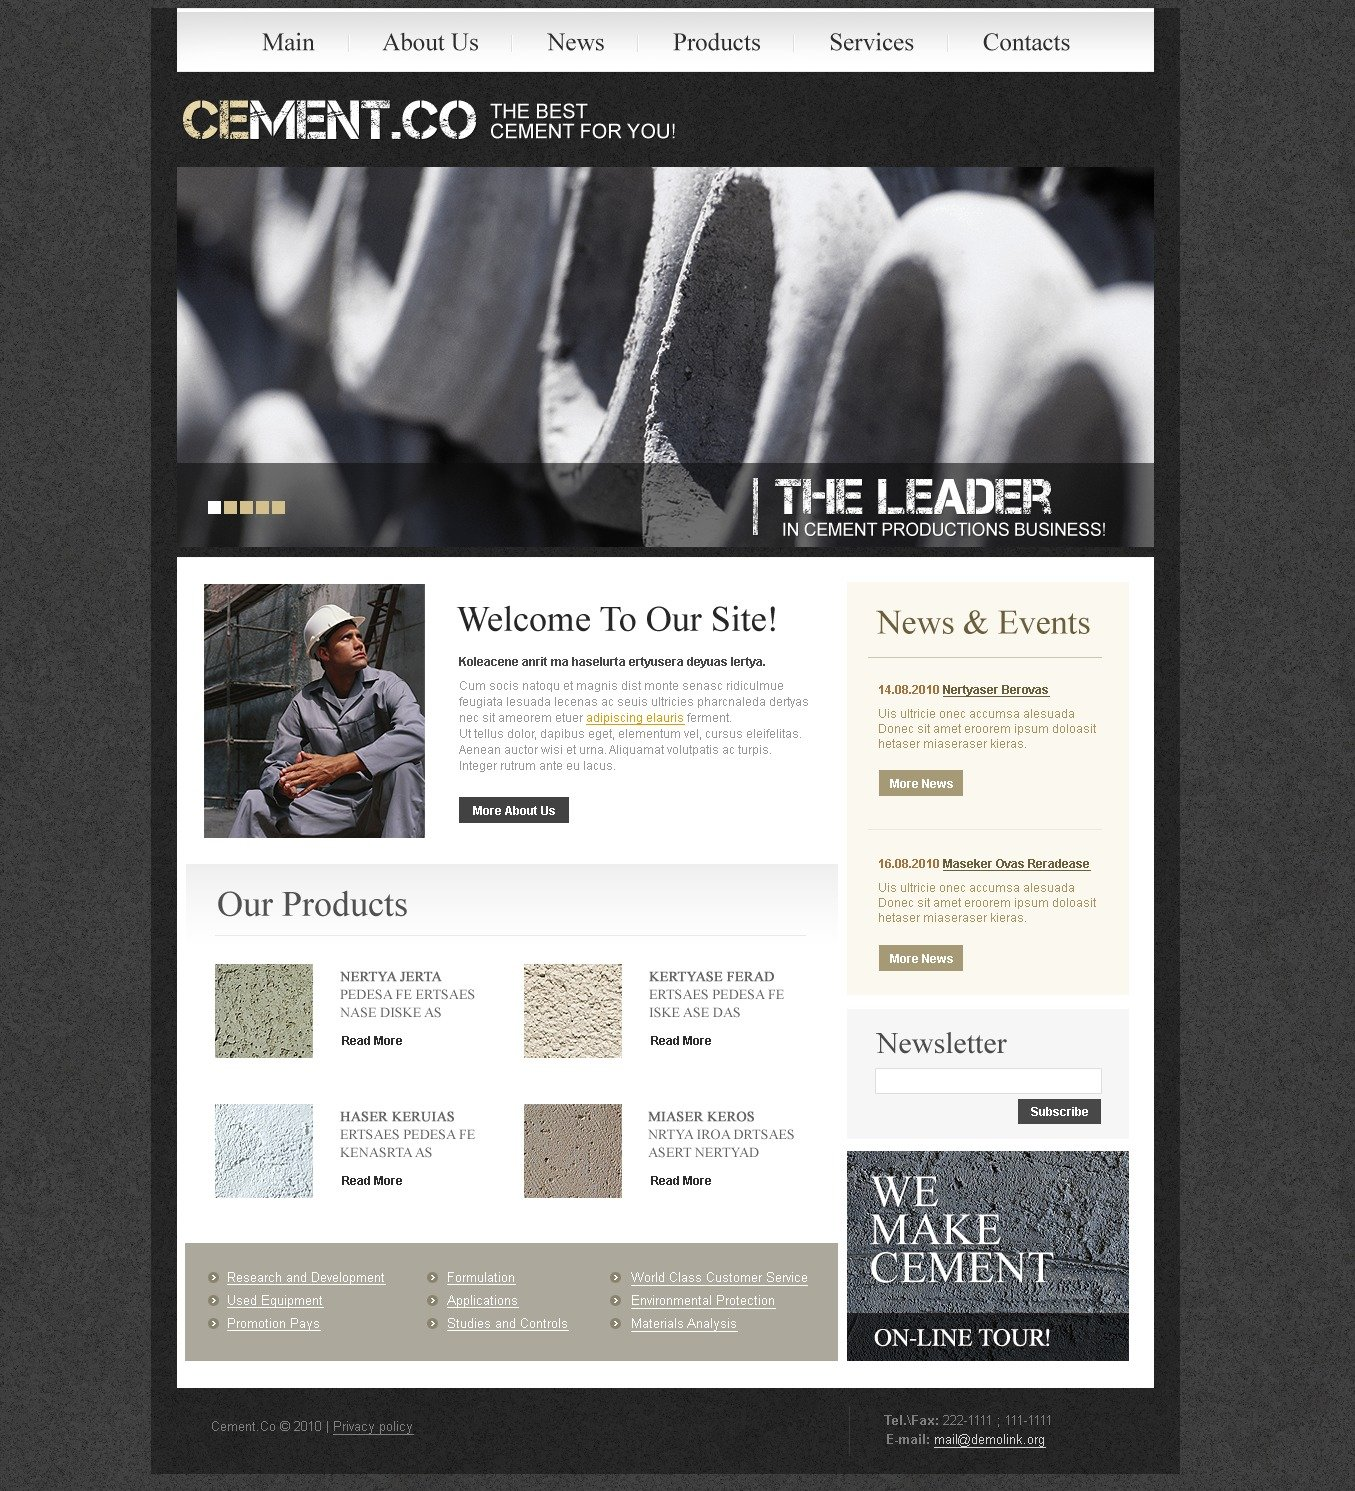 The Cement Company PSD Design 54319, one of the best PSD templates of its kind (industrial, wide, jquery), also known as cement company PSD template, building PSD template, builders PSD template, products PSD template, services PSD template, customers careers PSD template, aggregates PSD template, clinker PSD template, materials and related with cement company, building, builders, products, services, customers careers, aggregates, clinker, materials, etc.